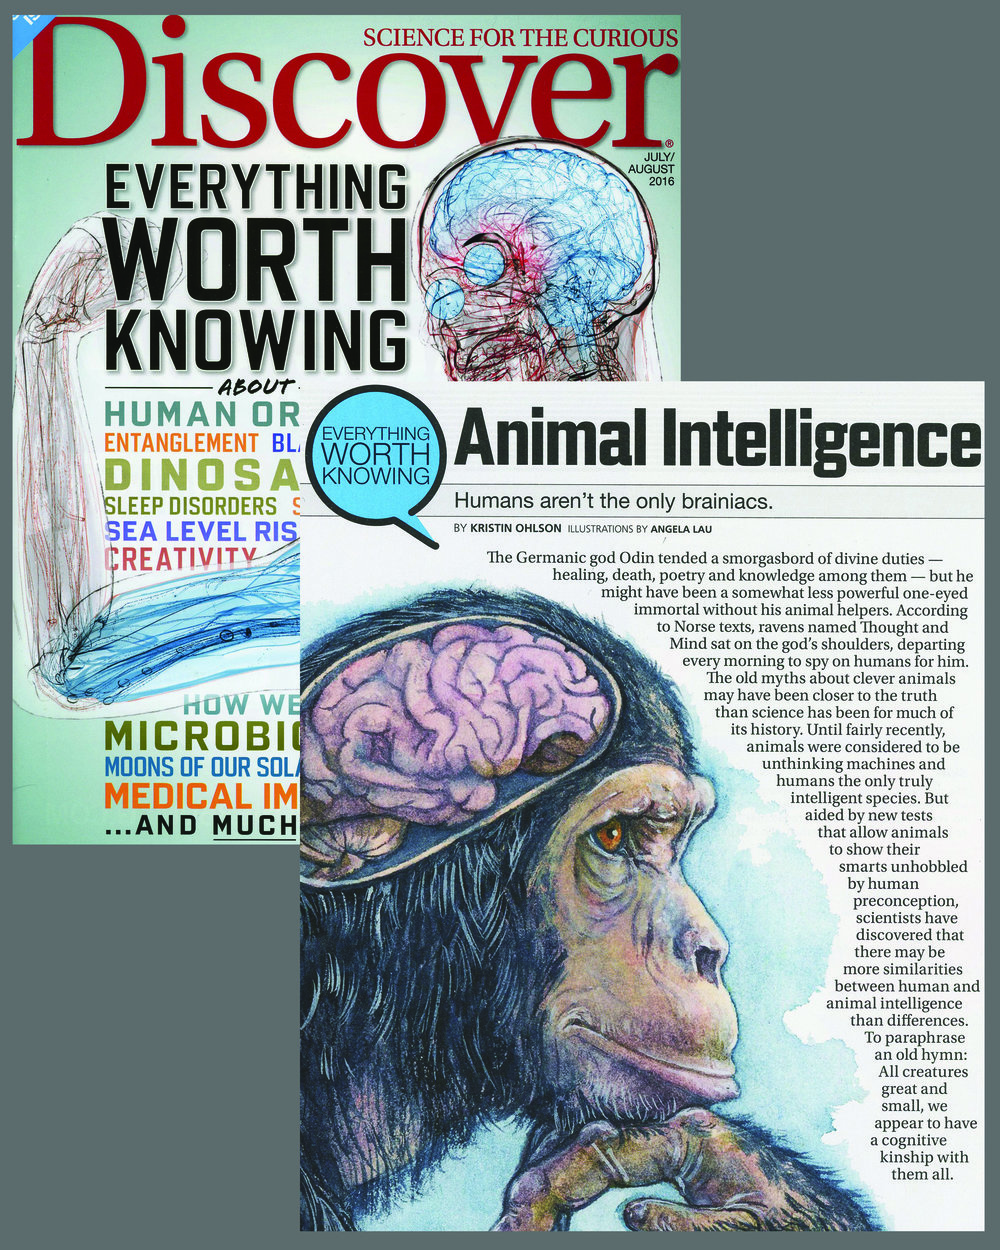 "Everything Worth Knowing About ... Animal Intelligence - ""Humans aren't the only brainiacs."" By Kristin Ohlson Published in Discover Magazine for July/August 2016 issue, page 66-69. Online Article here AD Alison Mackey Article on different types of intelligence in animals"